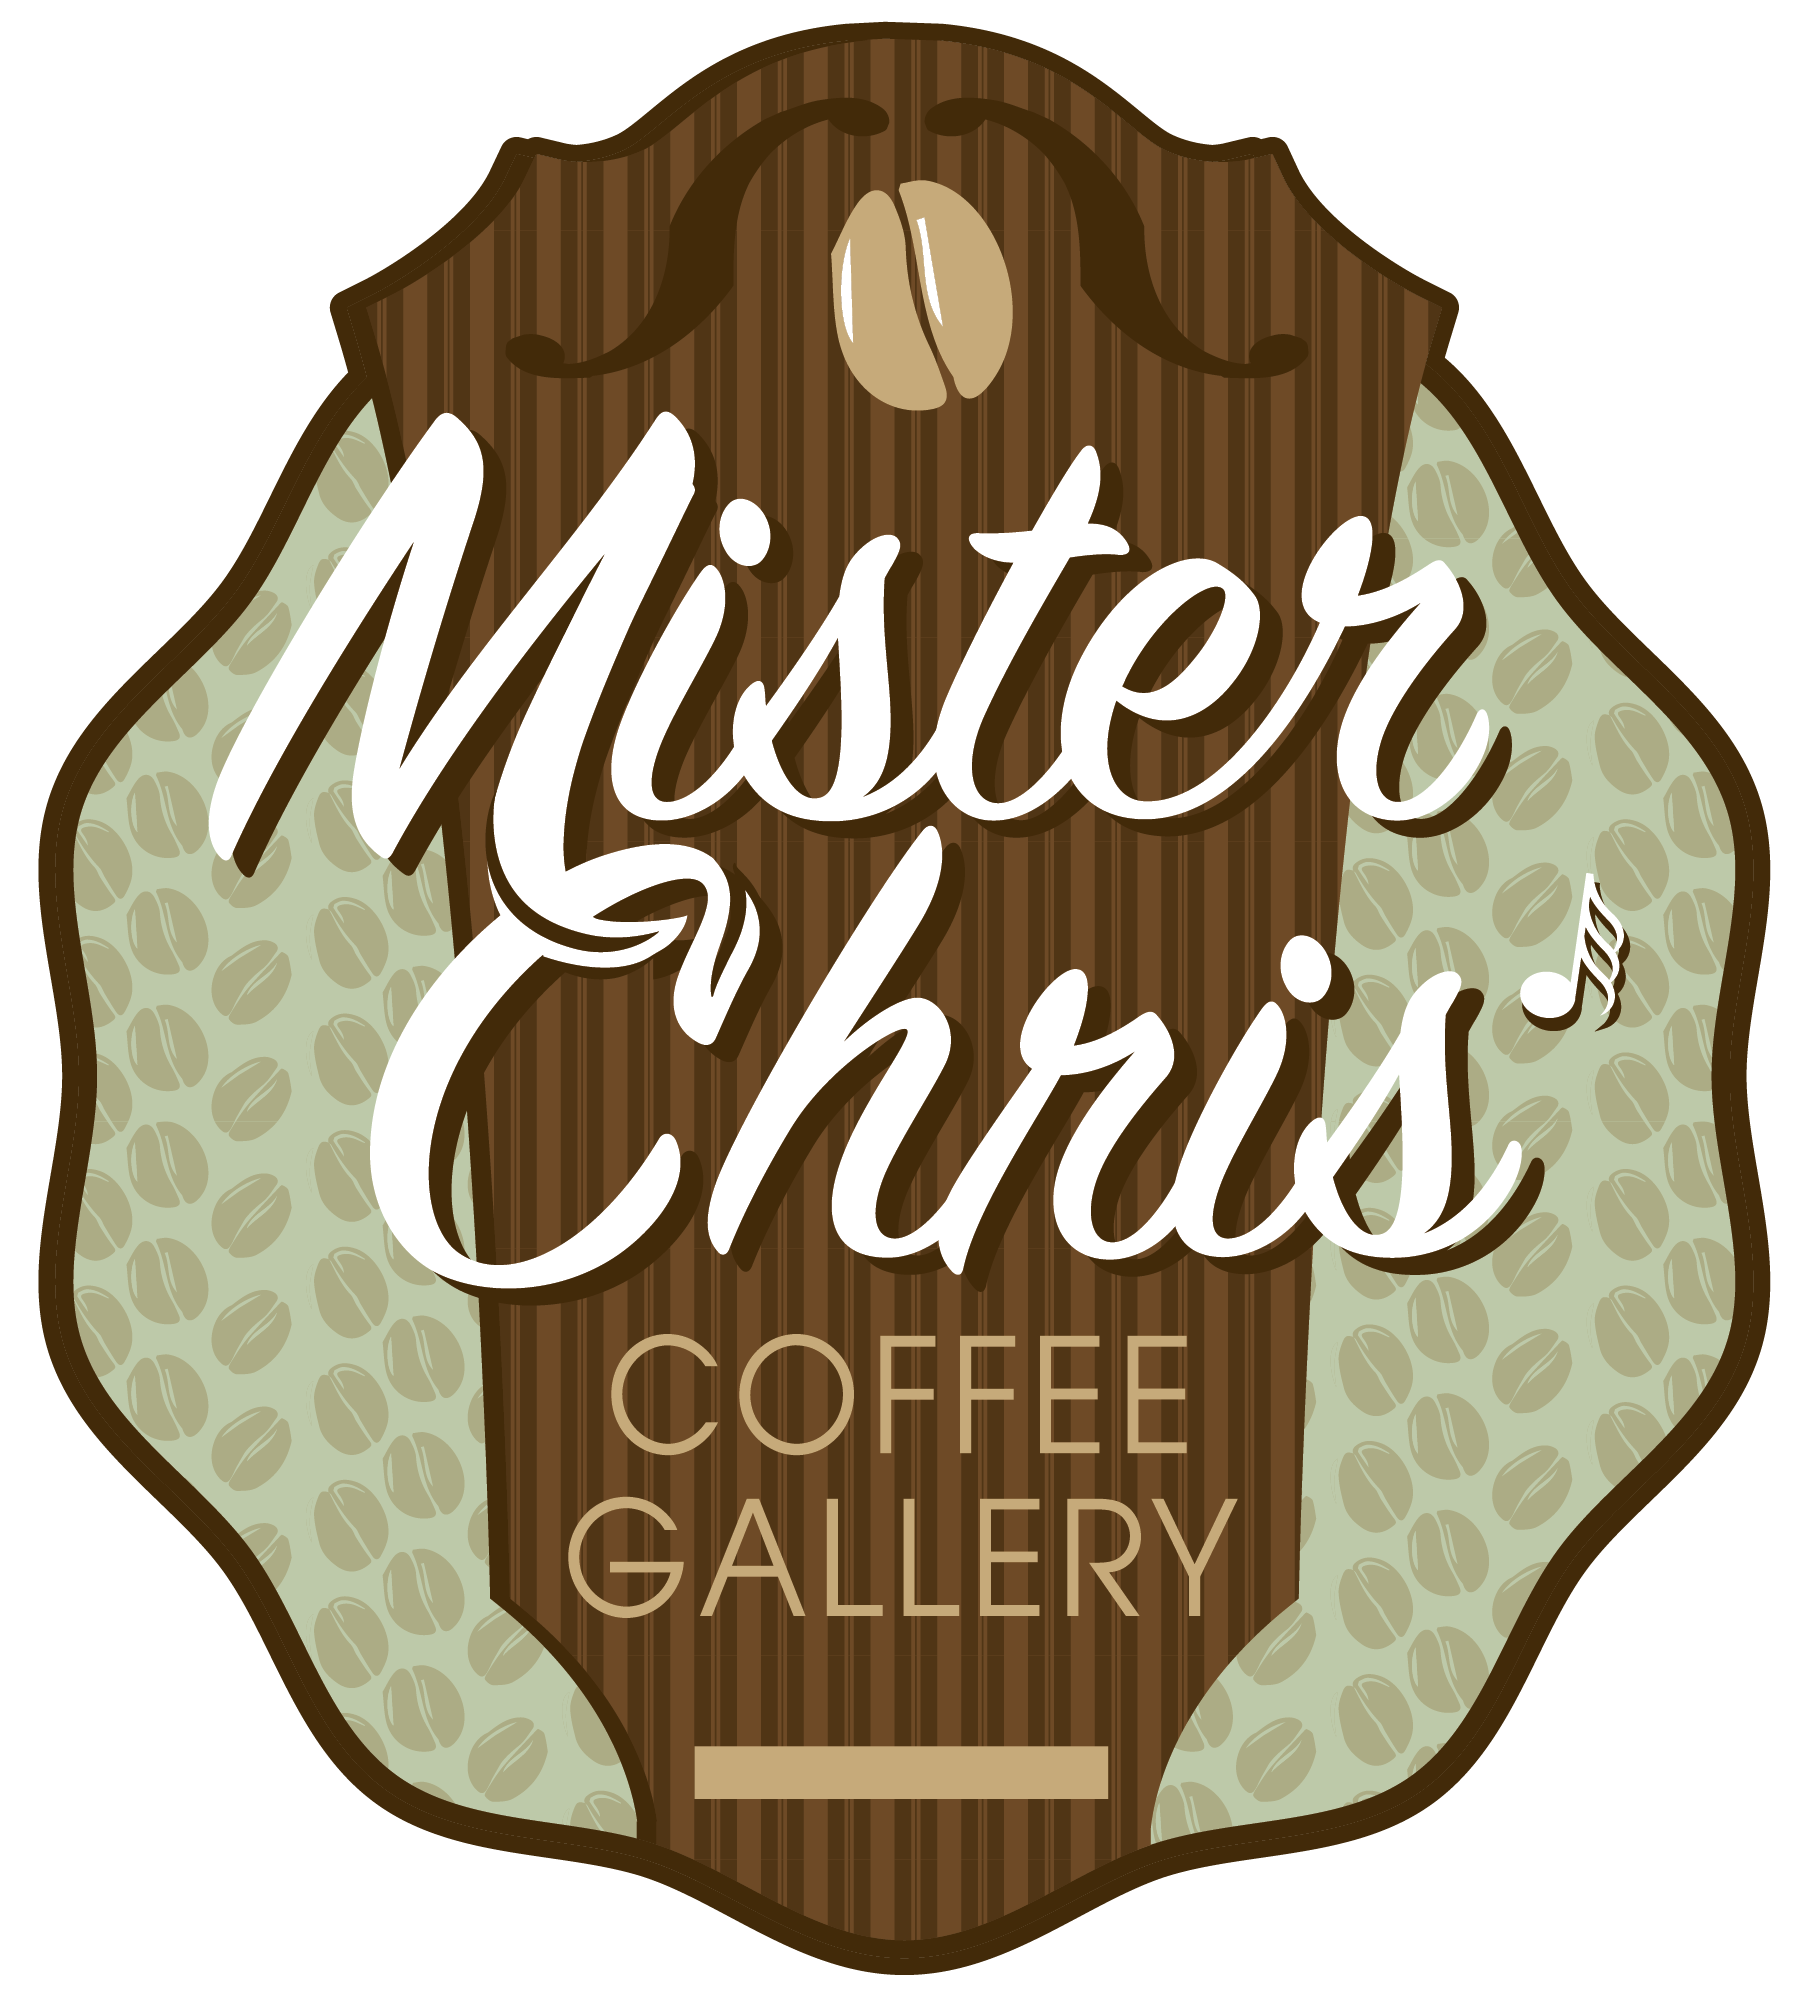 Mister Chris' Coffee Gallery